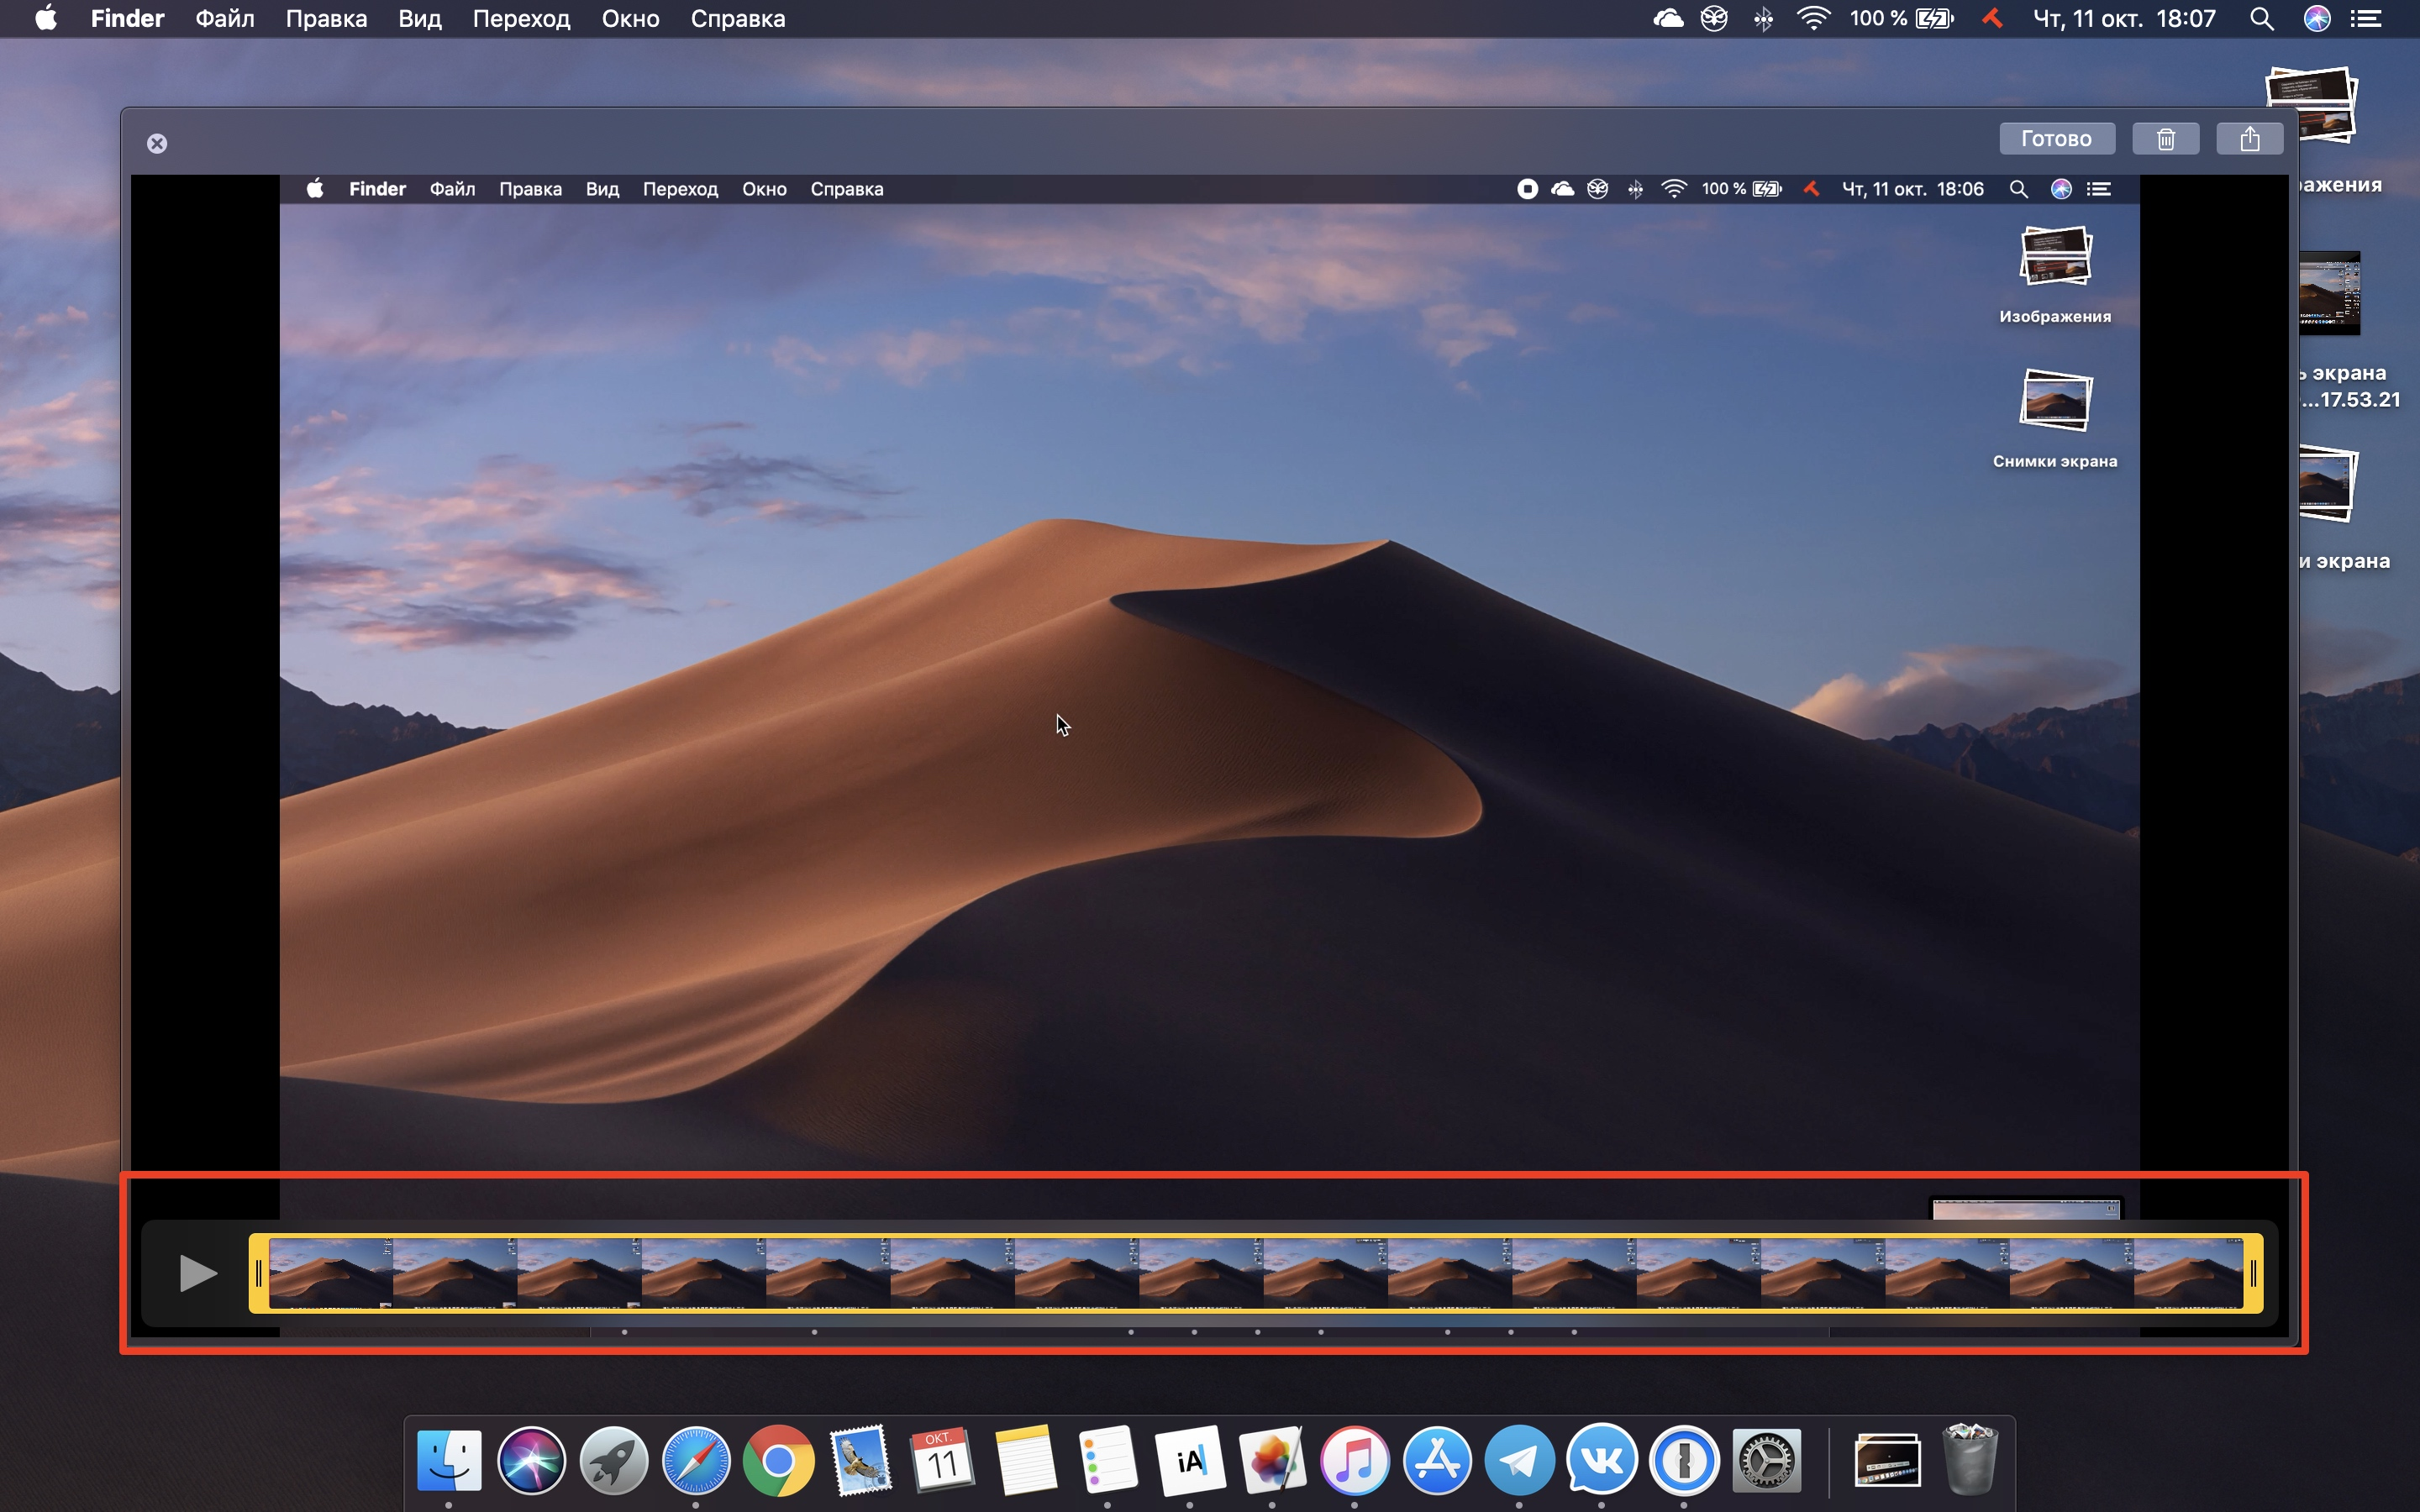 All you need to know about the screenshots in macOS Mojave